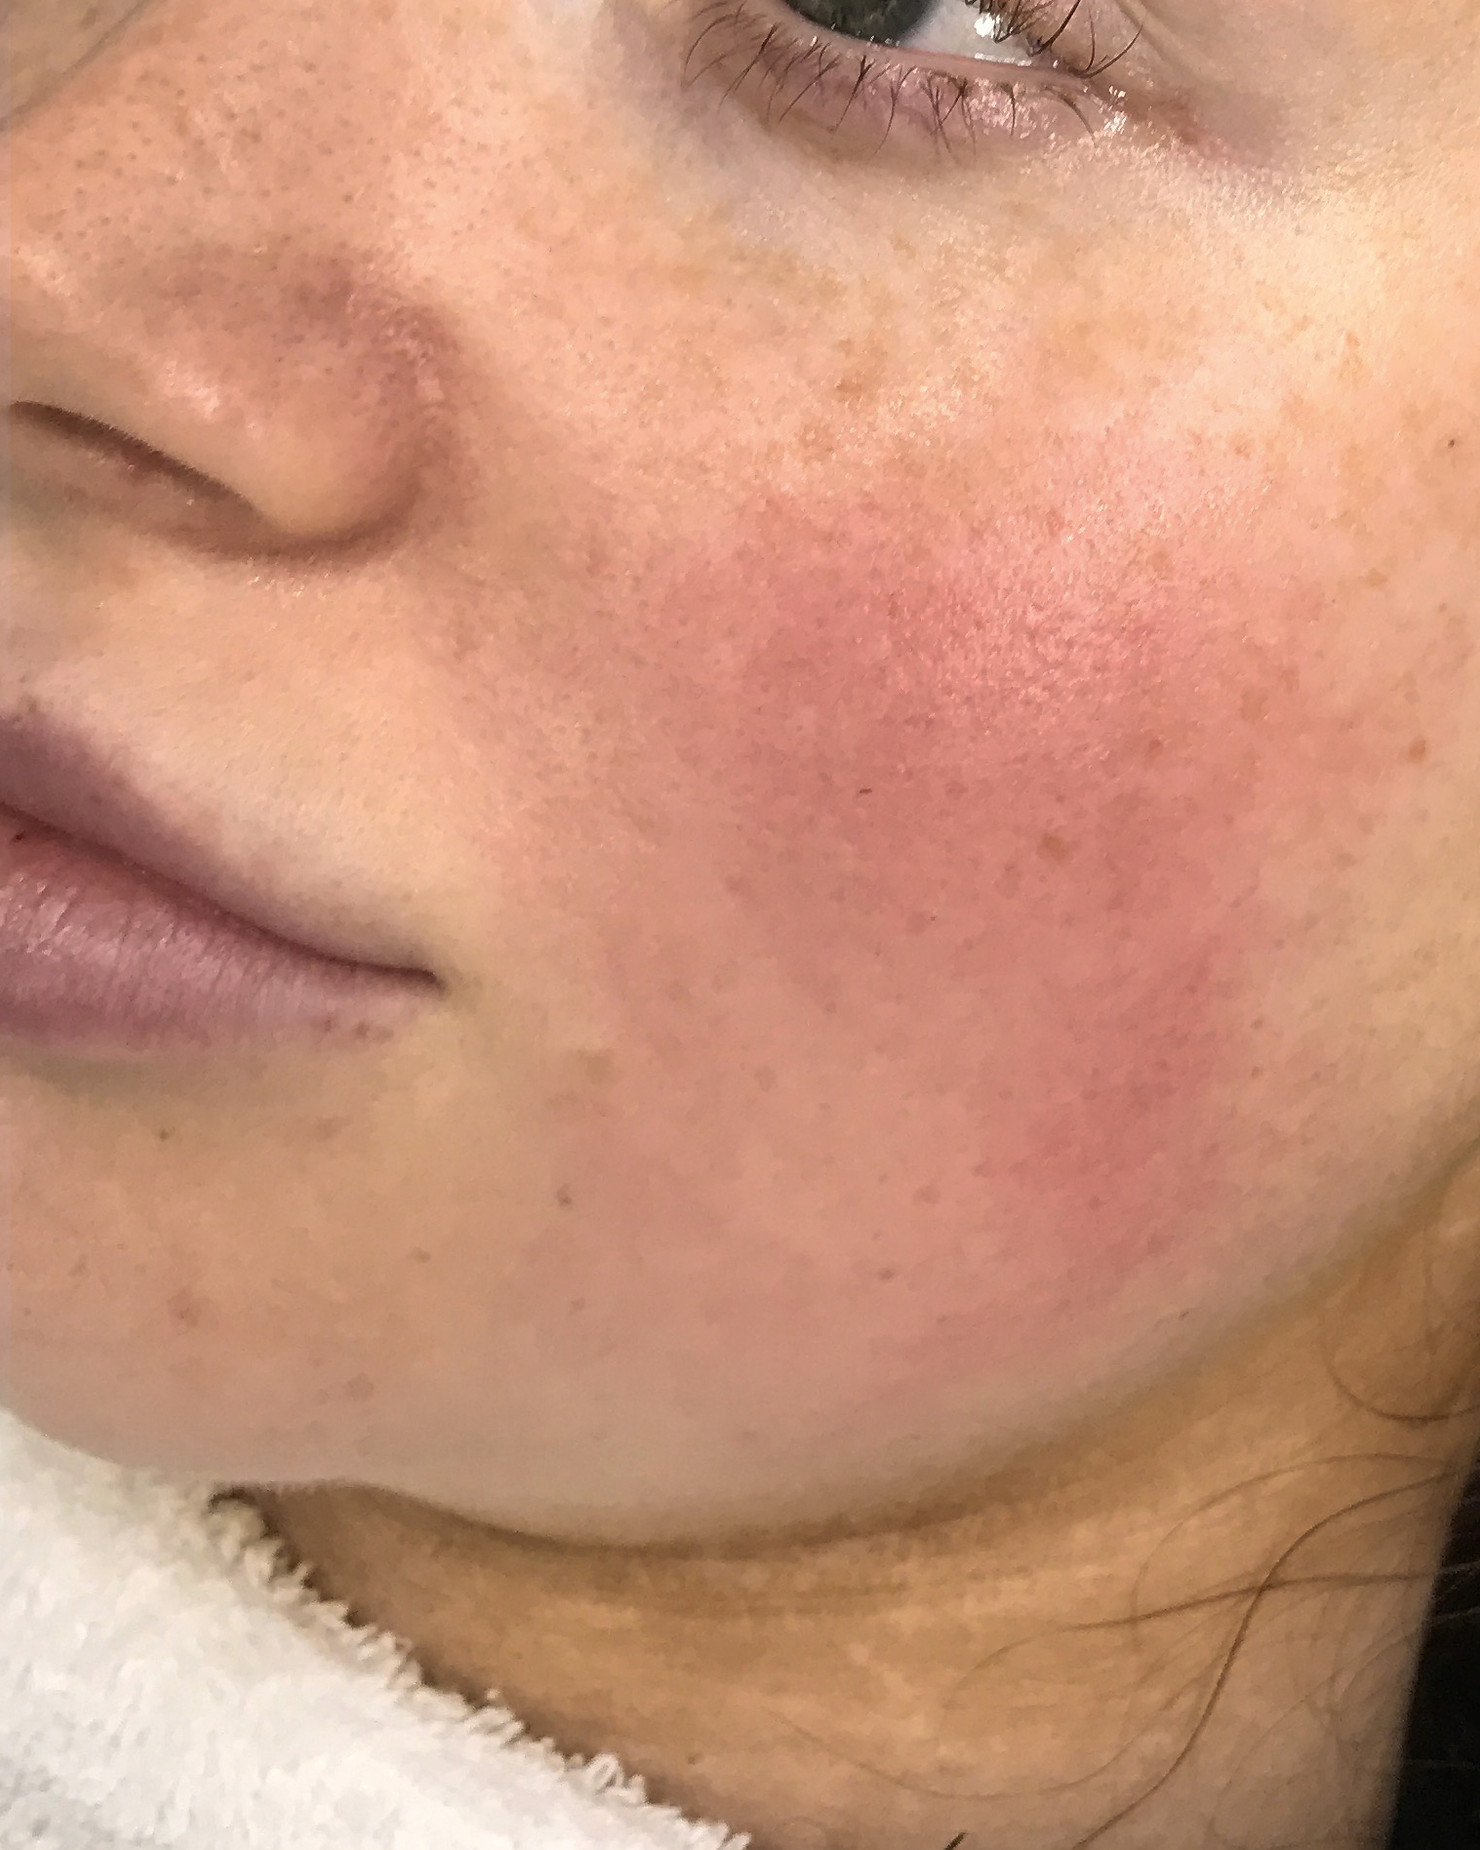 AFTER COLLAGEN INDUCTION THERAPY AND SKIN COACH